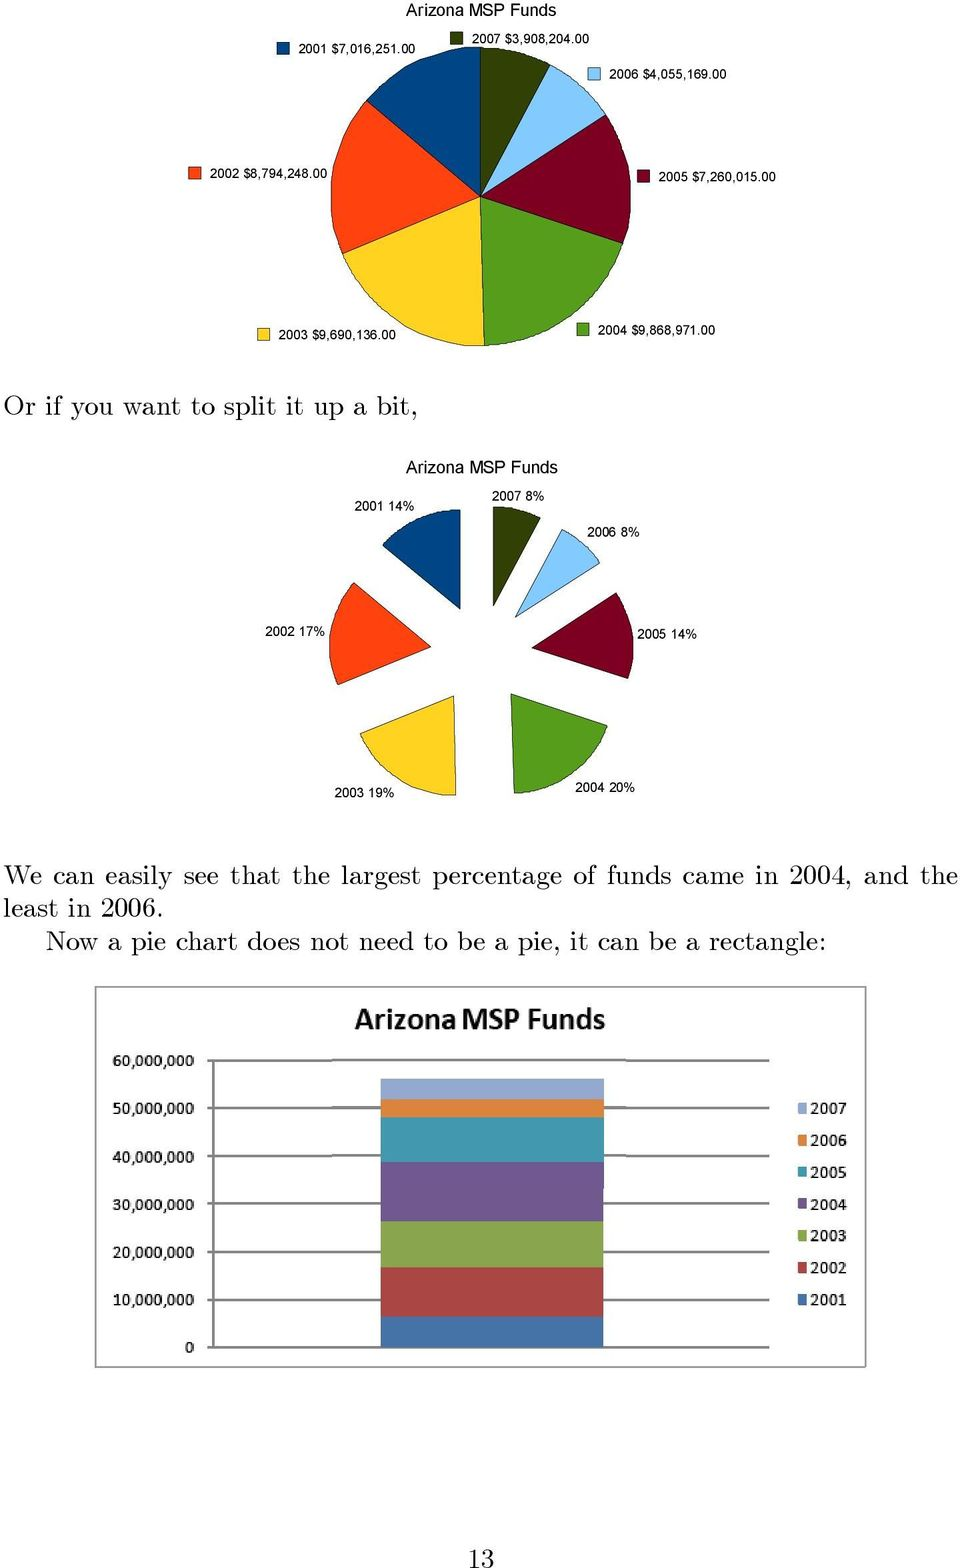 00 Or if you want to split it up a bit, Arizona MSP Funds 2001 14% 2007 8% 2006 8% 2002 17% 2005 14% 2003